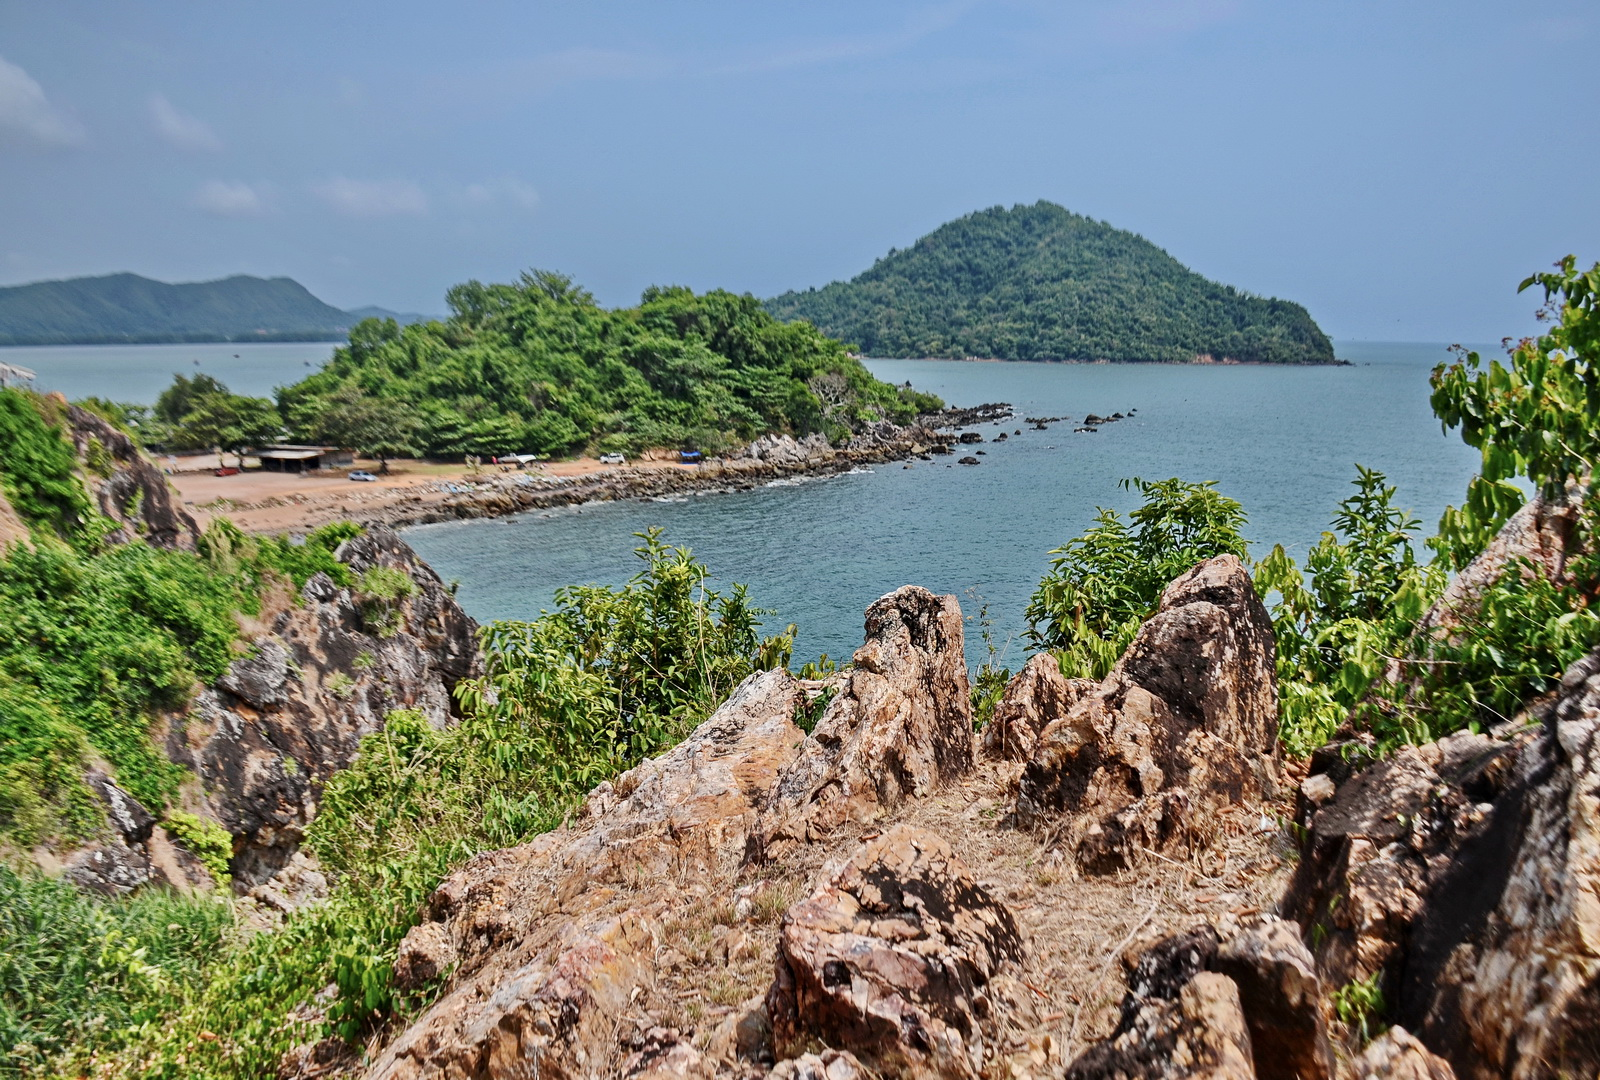 Coastline between Chao Lao and Khung Wiman